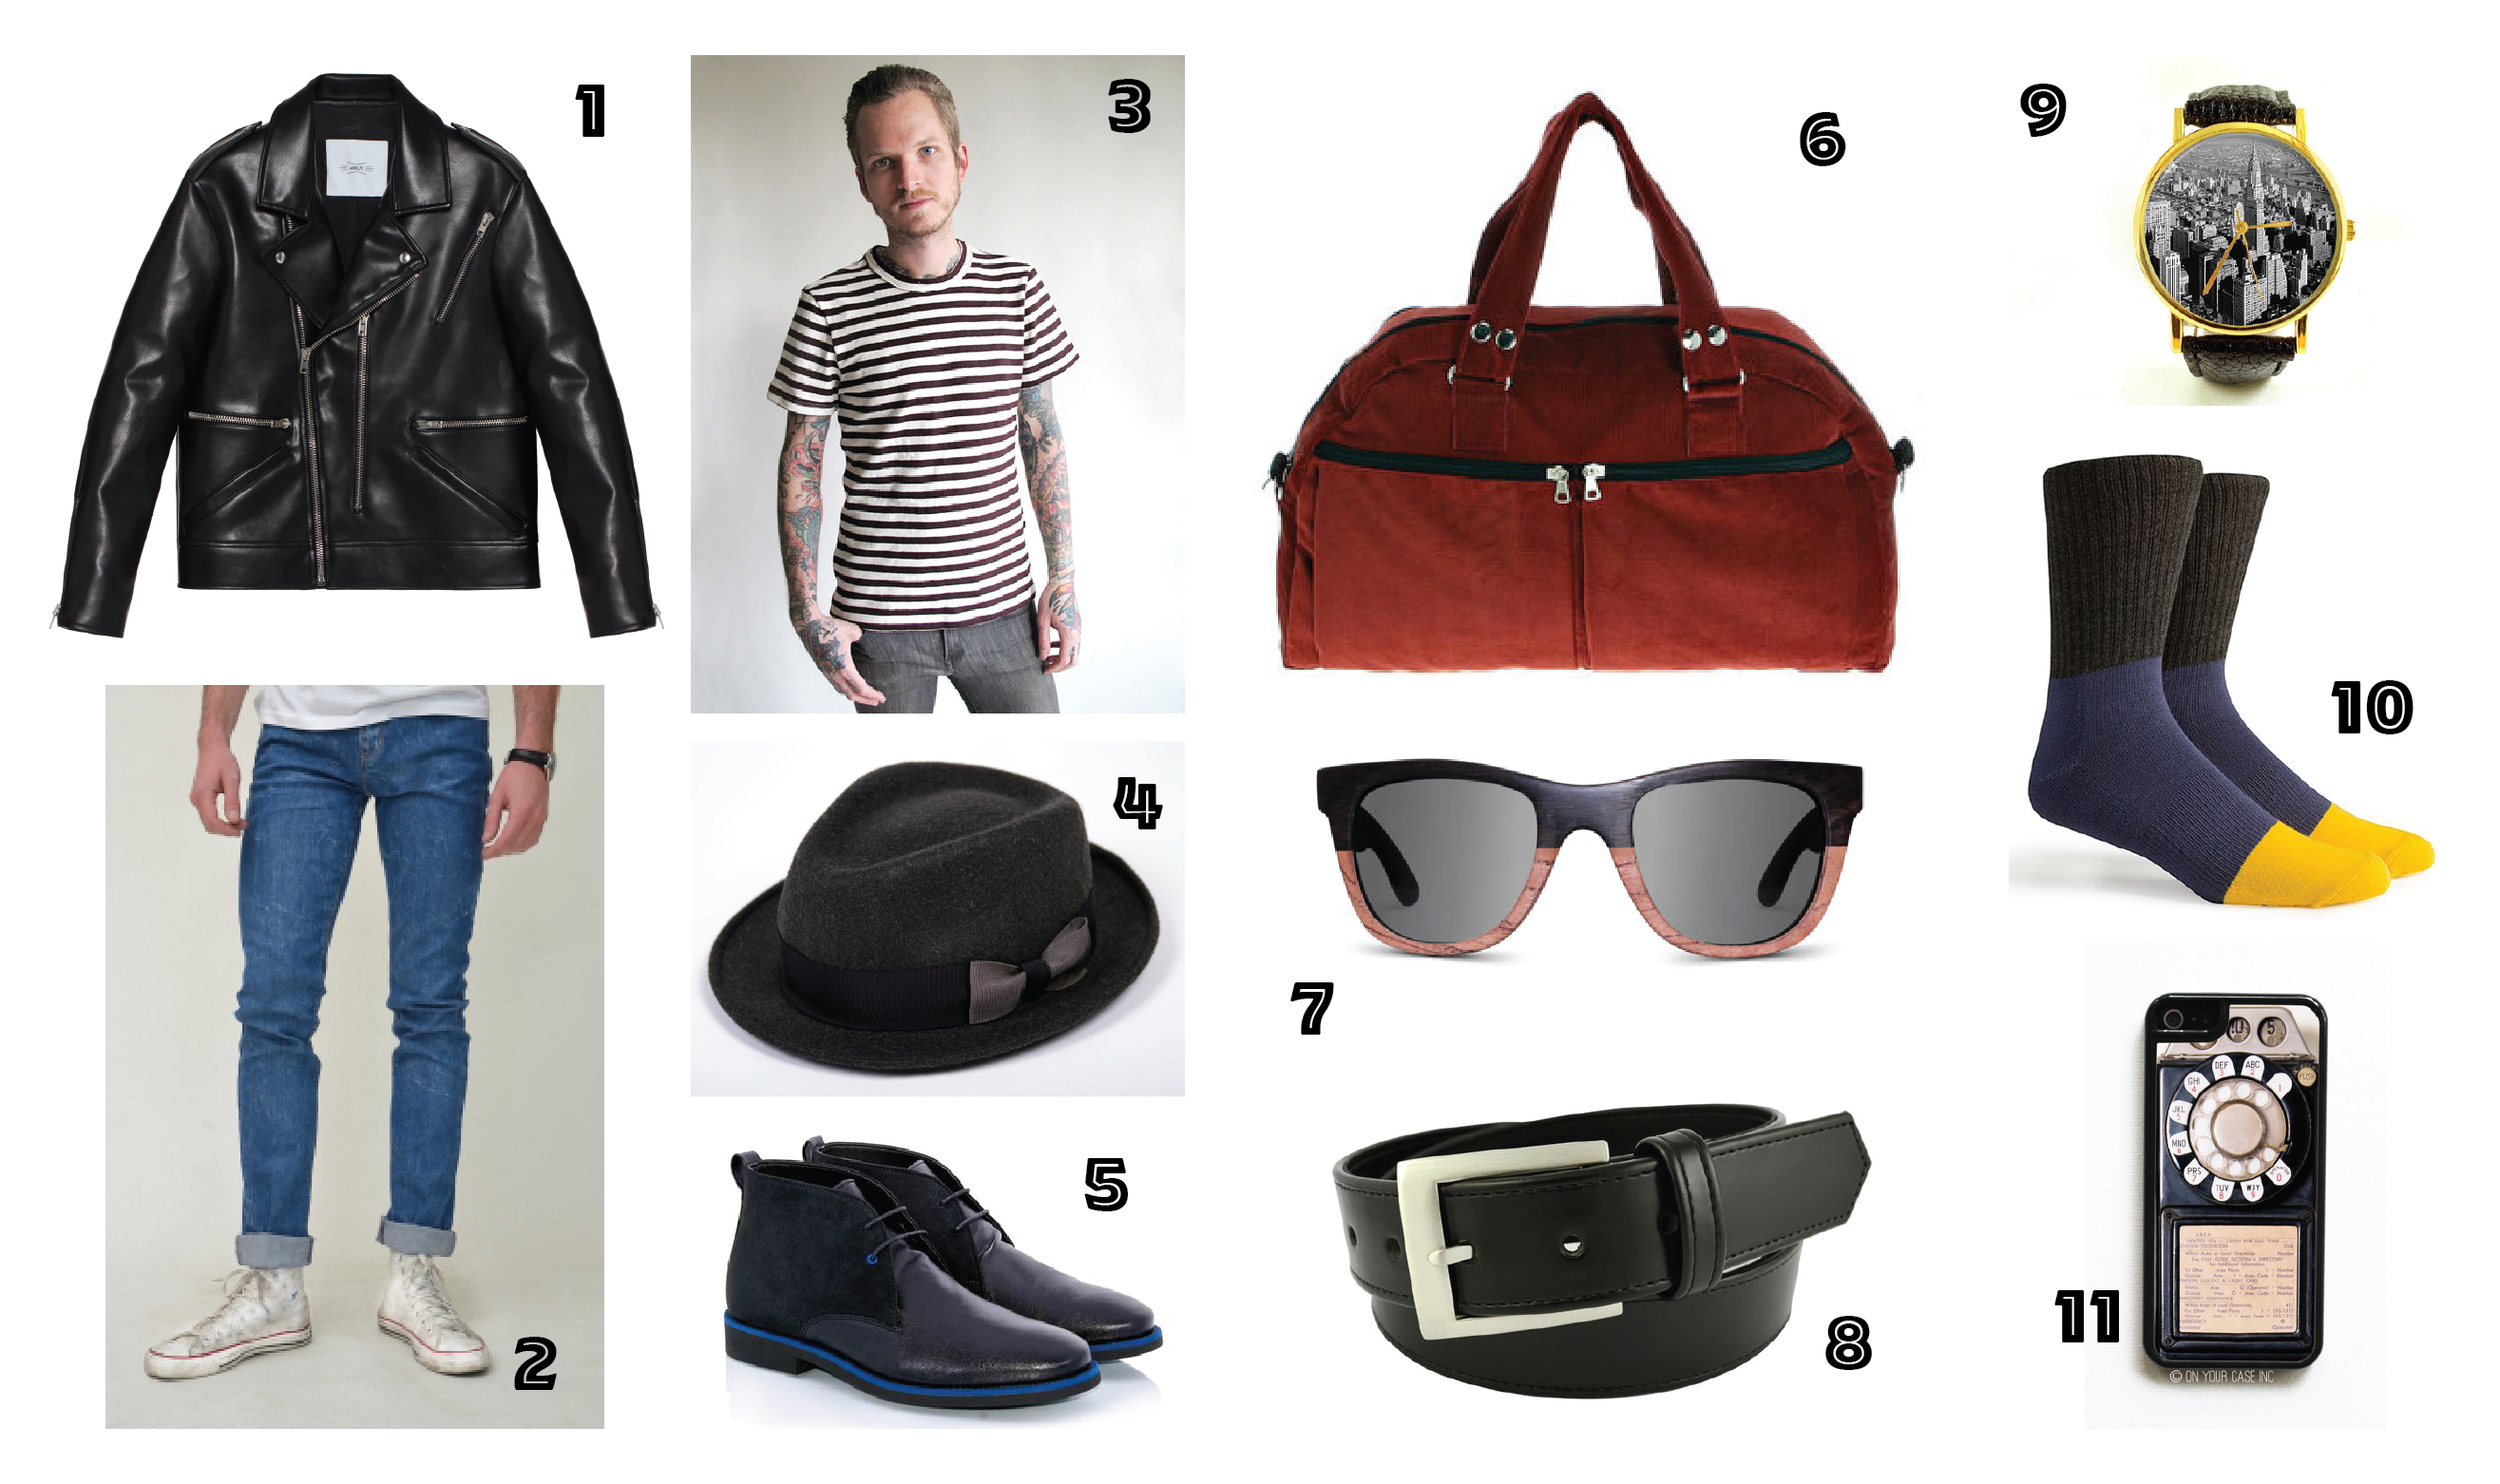 1.  Floyd Shadow Leather Jackets by April 77  • 2.  Mid Dusty Denim Skinny Peanut Men's by Monkee Jeans  • 3.  Brando Tee by James Payne  • 4.  Black Sheep Hat  by Brave Gentleman  • 5.  Harrison Black Boots by Bourgeois Boheme  • 6.  Red Corduroy Messenger Bag by Beg for a Bag  7.  Wood Bamboo Sunglasses by Wooded  • 8.  Truth Calculator Belt by Truth  • 9.  New York City Skyline Watch by 10 North Creative  • 10.  Starter Athletic Socks by Bergies  • 11. Vintage Phone Case by On Your Case   Image Source & Credit: Listed Above.